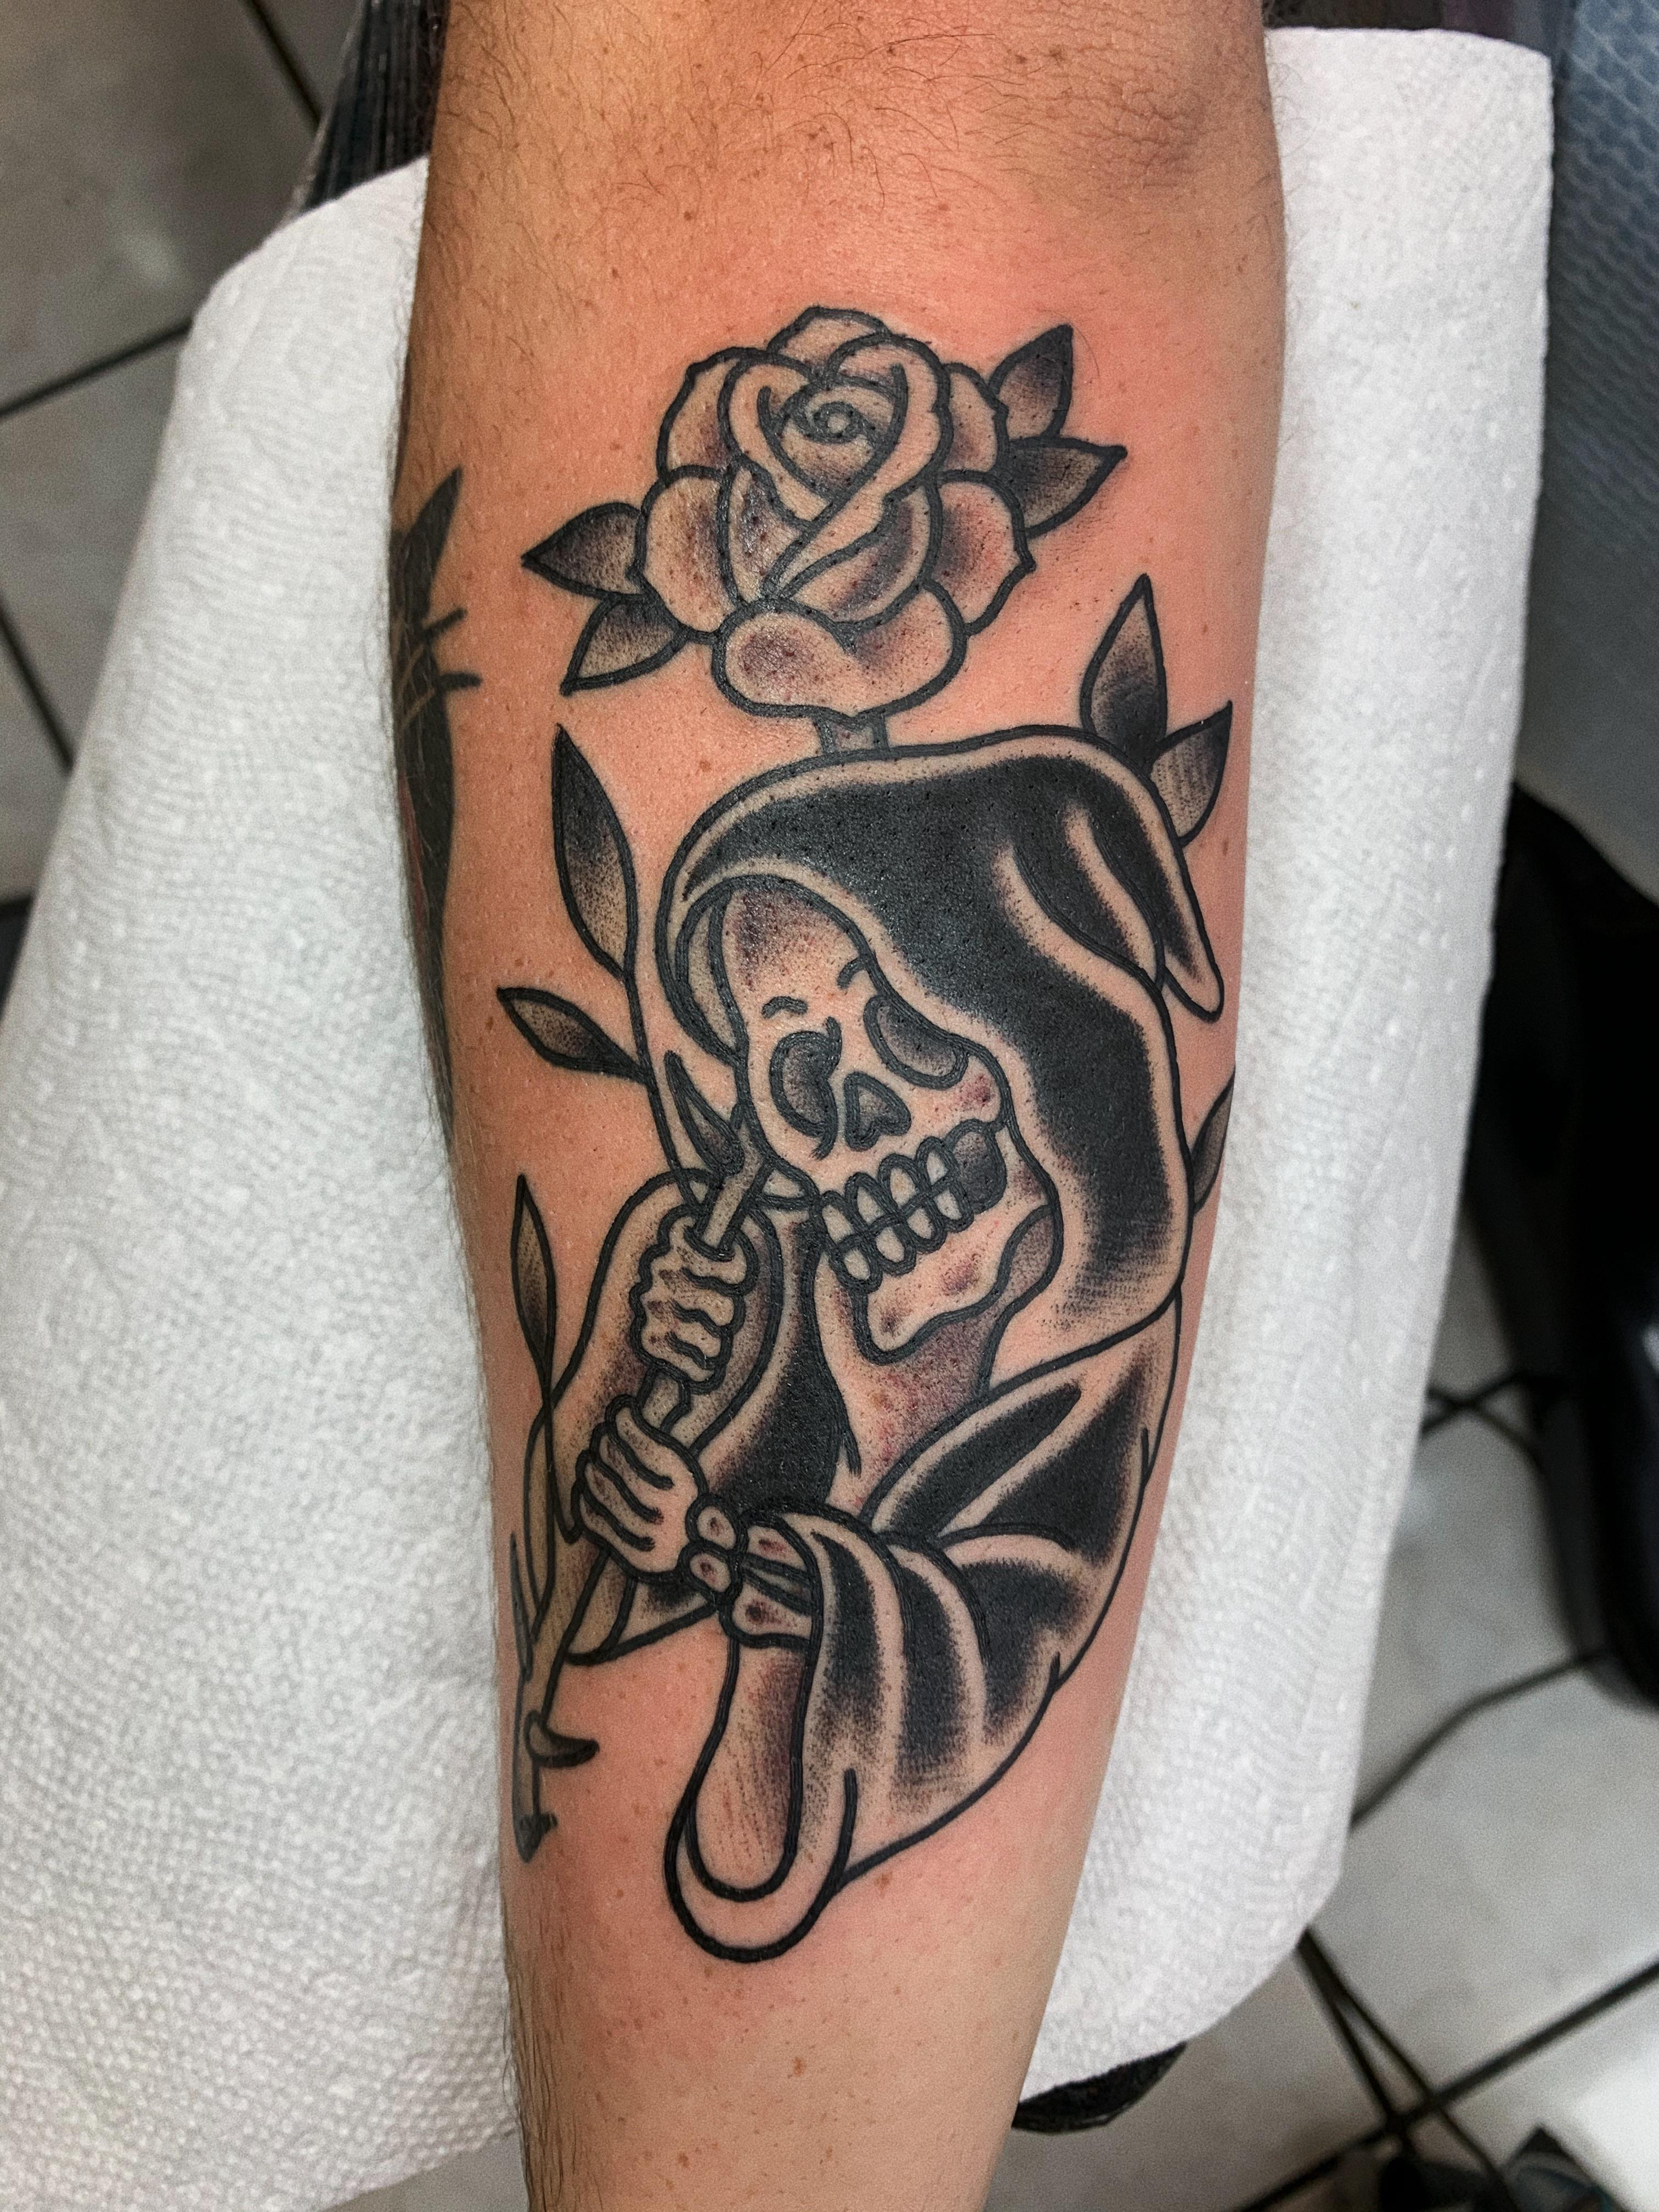 Traditional Reaper Tattoos : traditional, reaper, tattoos, Traditional, Reaper, Hotte,, Solid, Tattoo, Elmont,, Tattoos